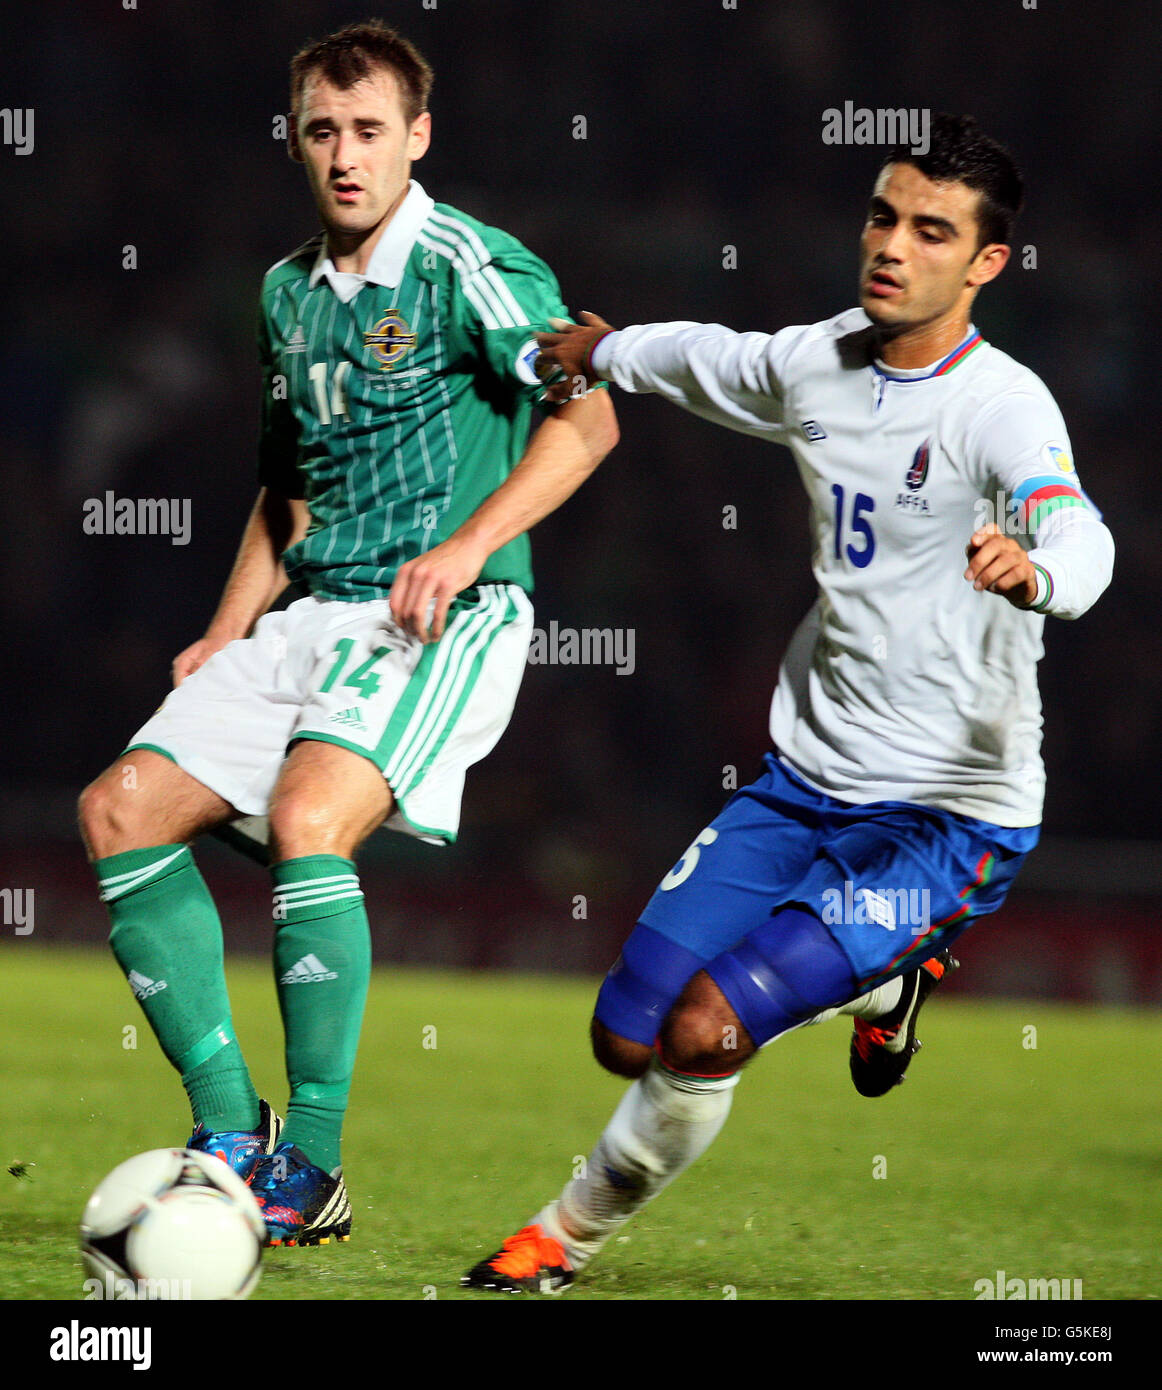 Republic Of Ireland V Azerbaijan: Niall Mcginn Northern Ireland International Stock Photos